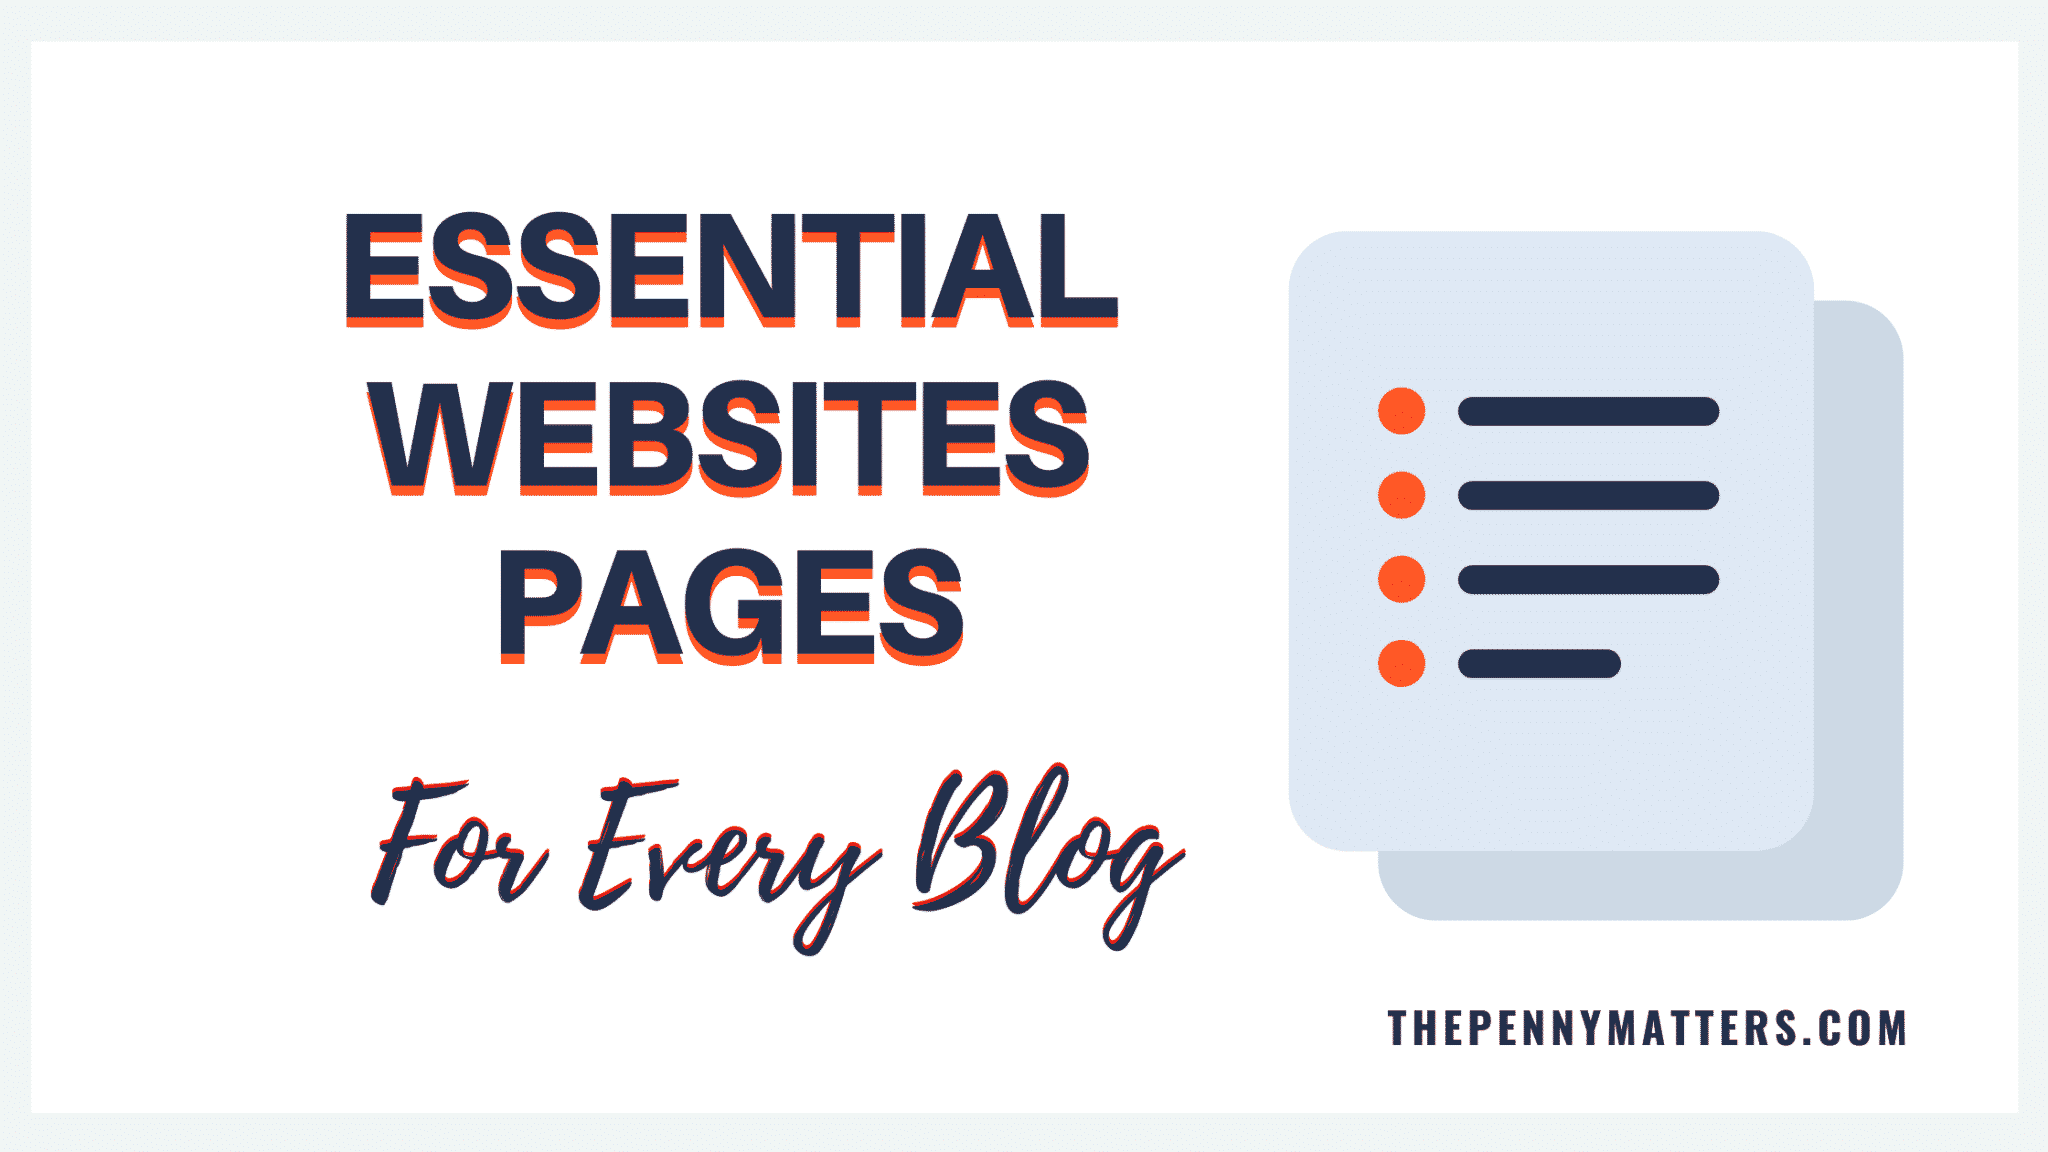 Essential website pages for every blogger